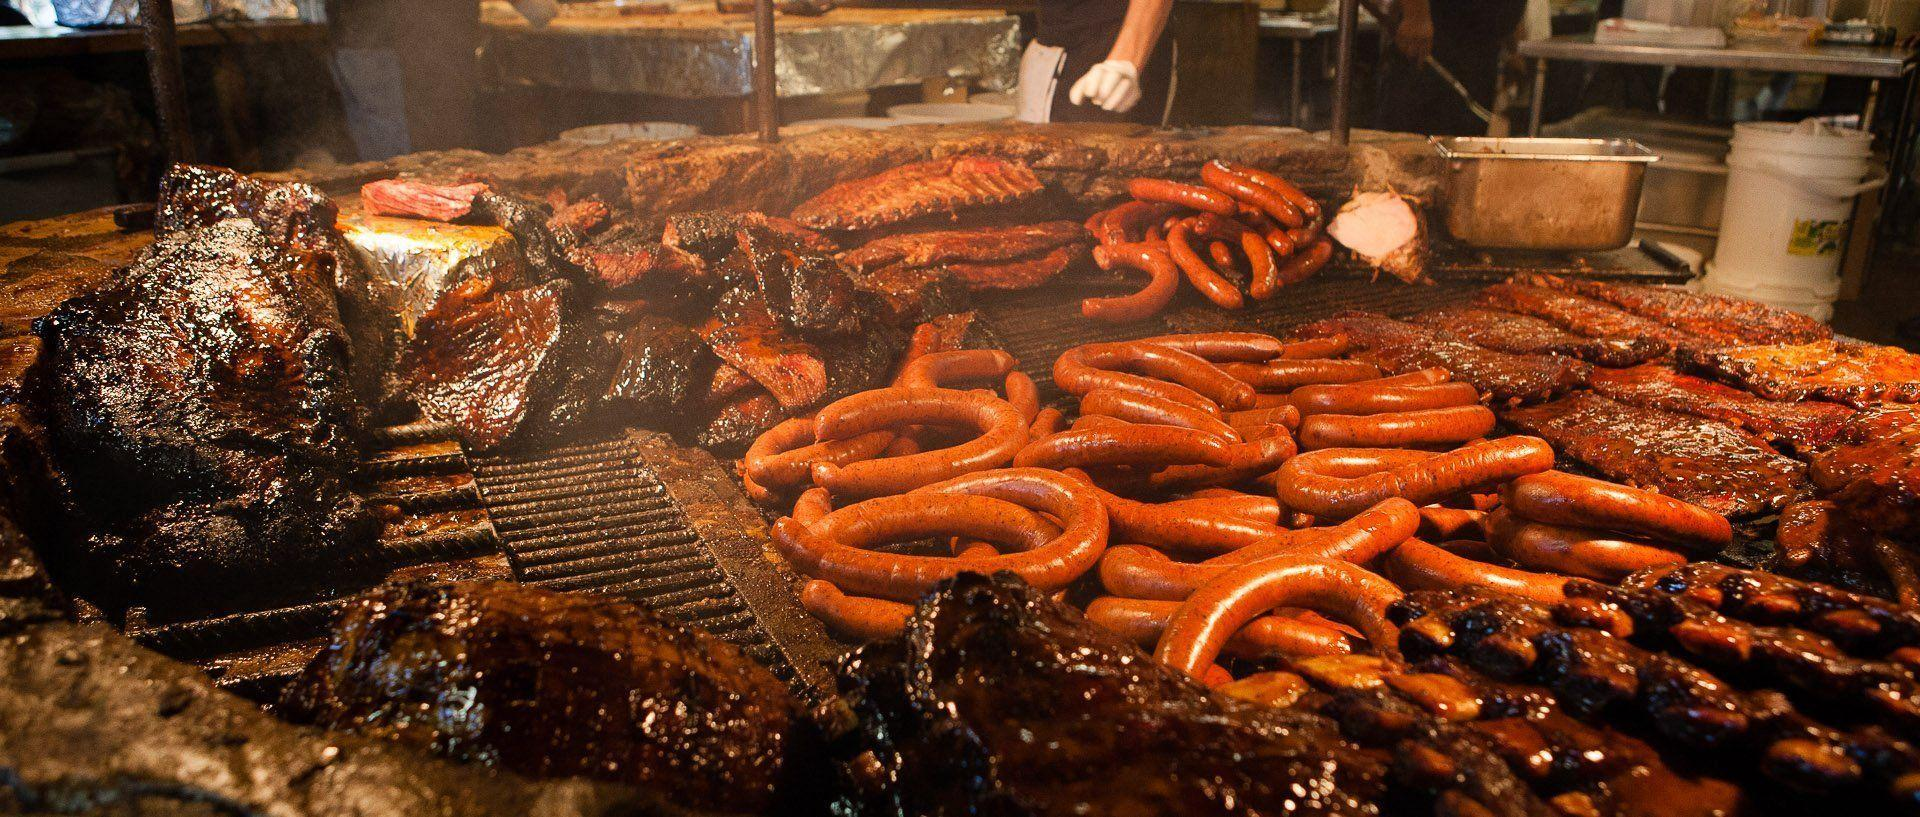 Fumble reccomend The salt lick barbecue